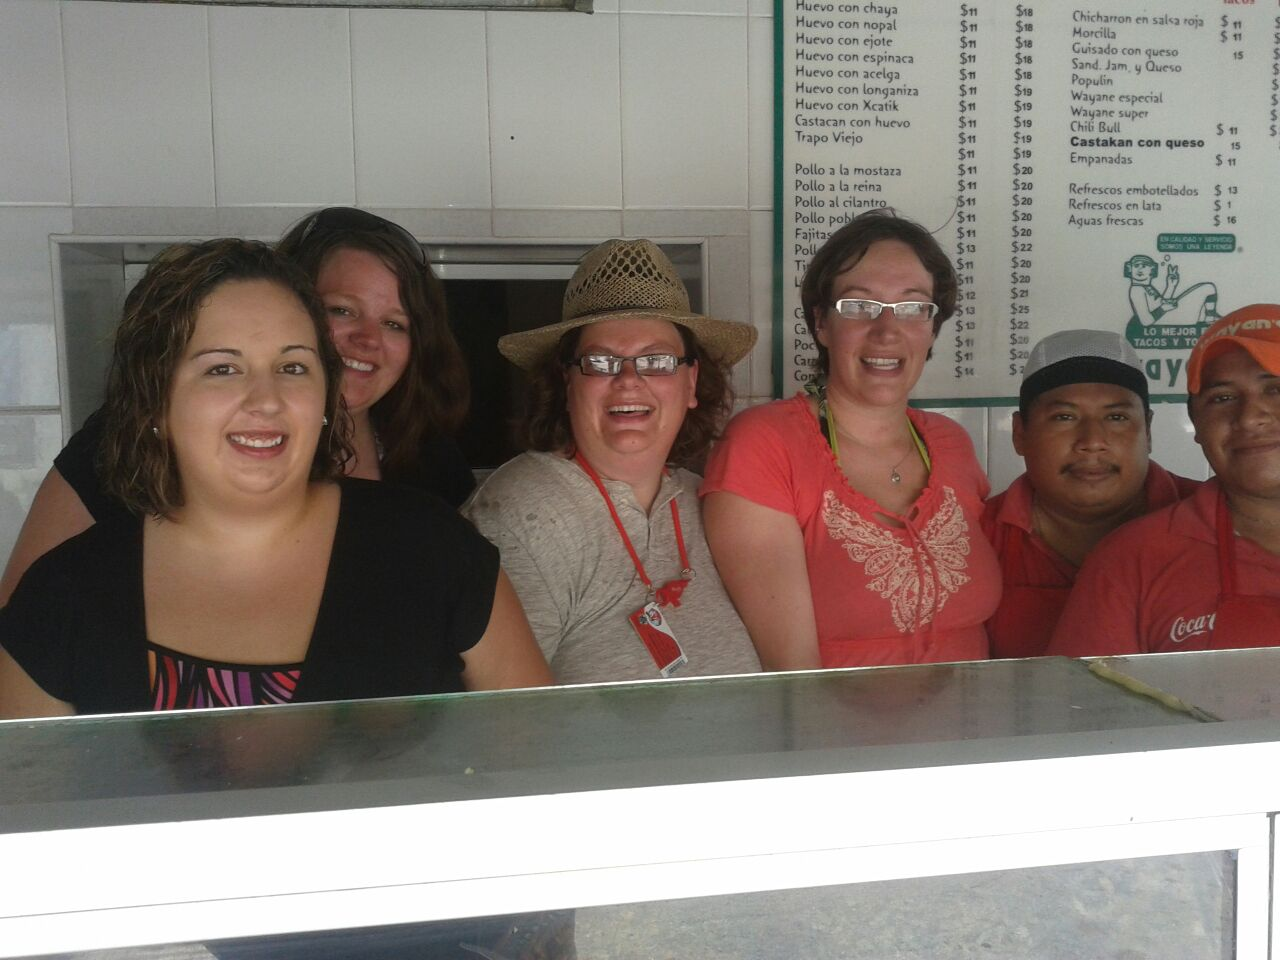 Here is the happy group INSIDE the taco kitchen with some of the staff!